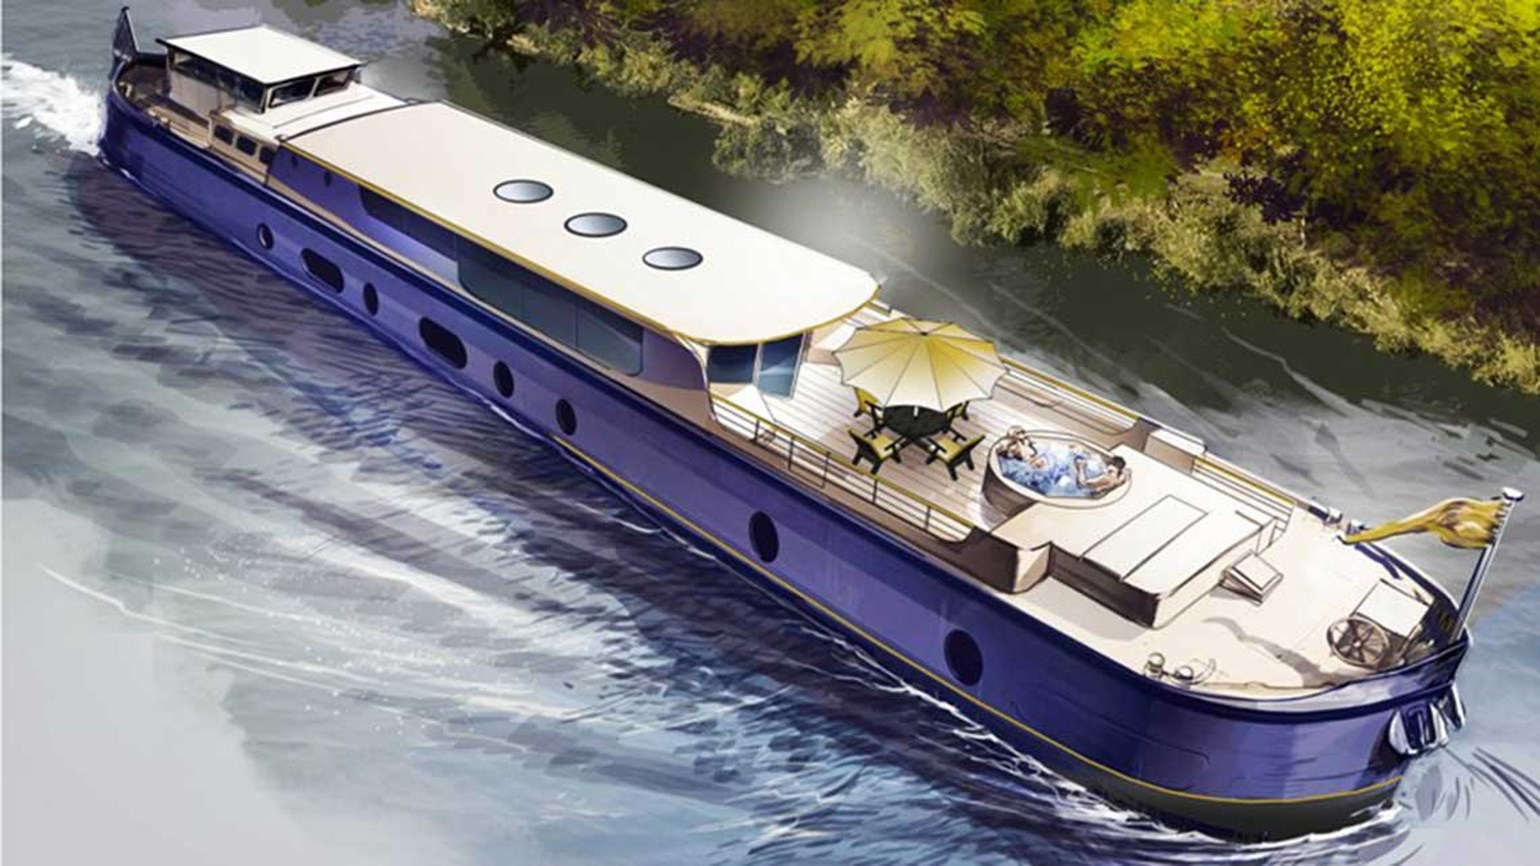 European Waterways to sail new luxury barge in France